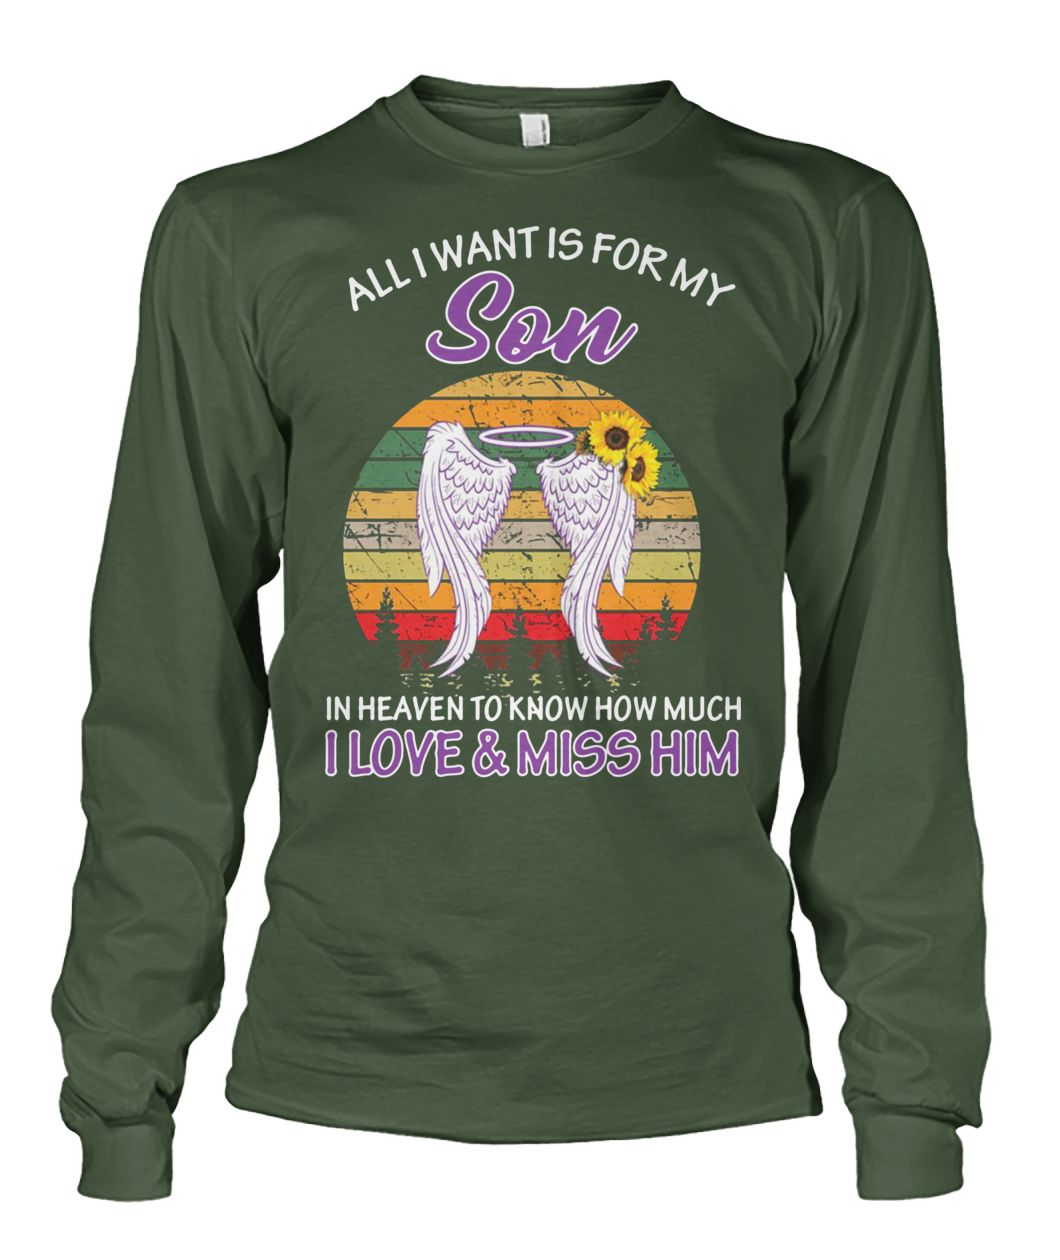 All I want is for my son in heaven to know how much I love and miss him unisex long sleeve